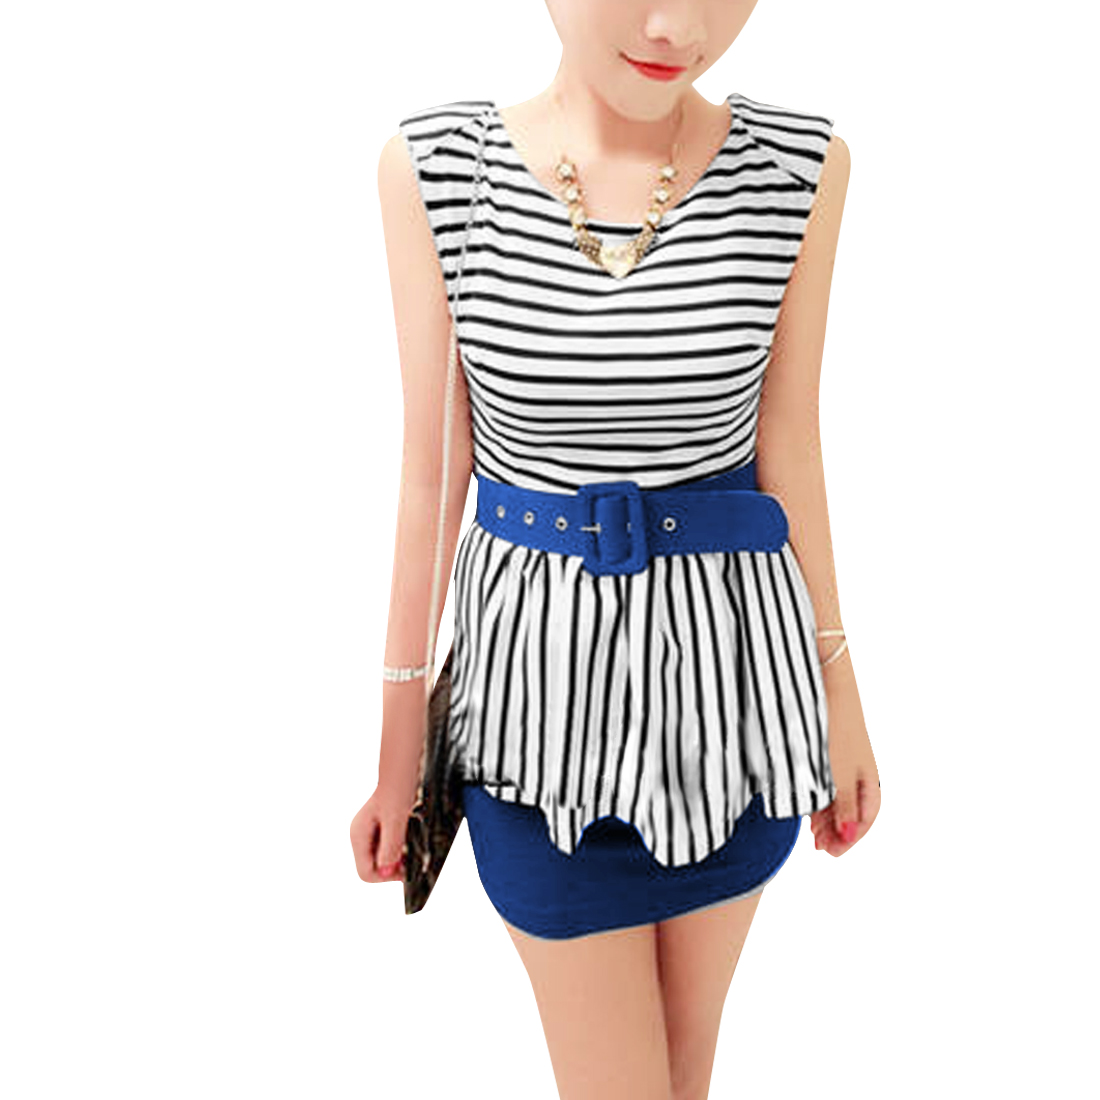 Woman Chic Stripes Pattern Design Royalblue Peplum Mini Dress w a Belt XS